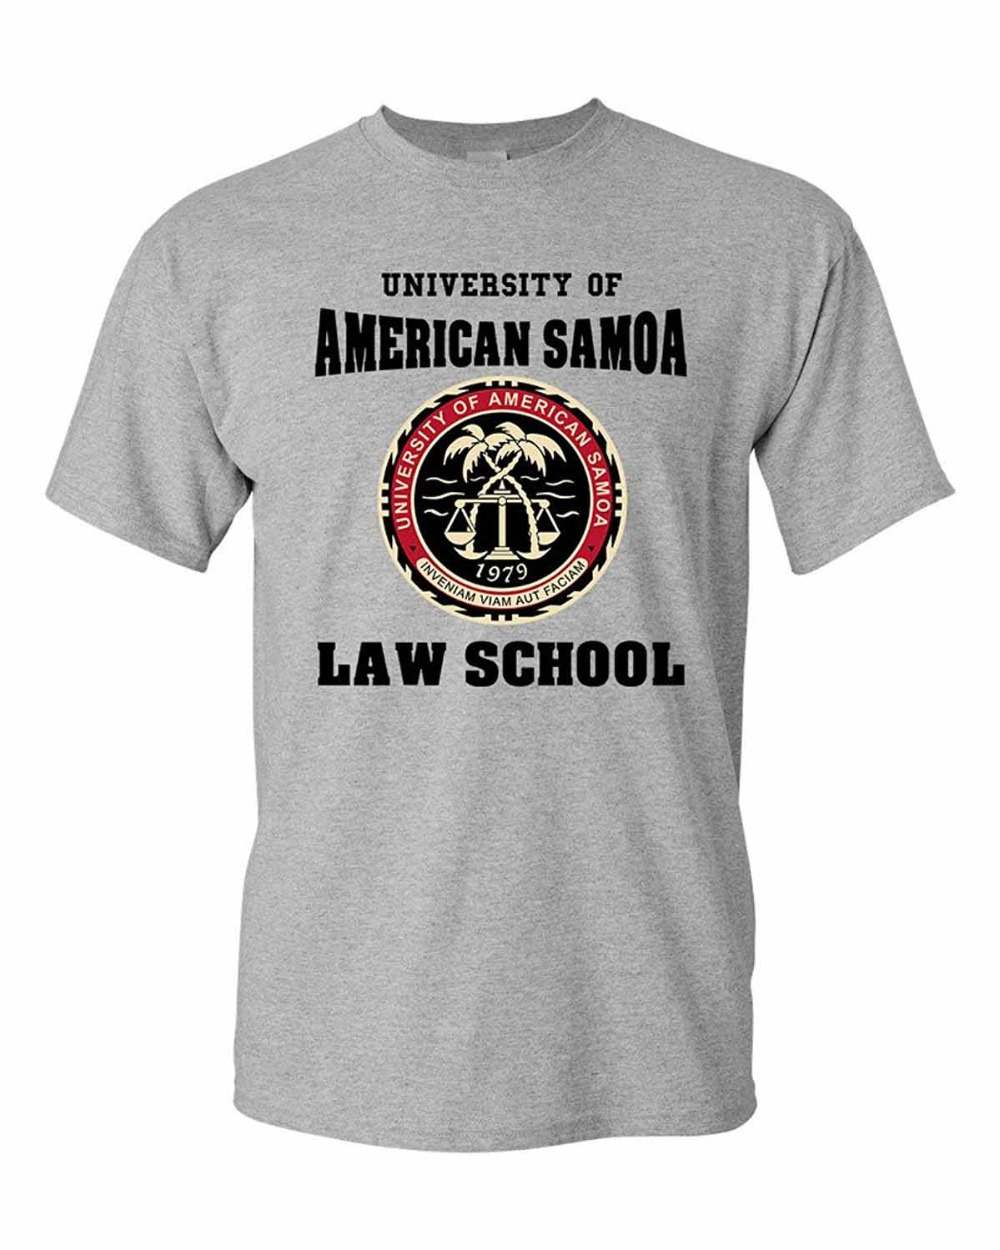 Newest 2019 Fashion Stranger Things T Shirt Men University Of American Samoa Law School DT Adult T-Shirt Tee image